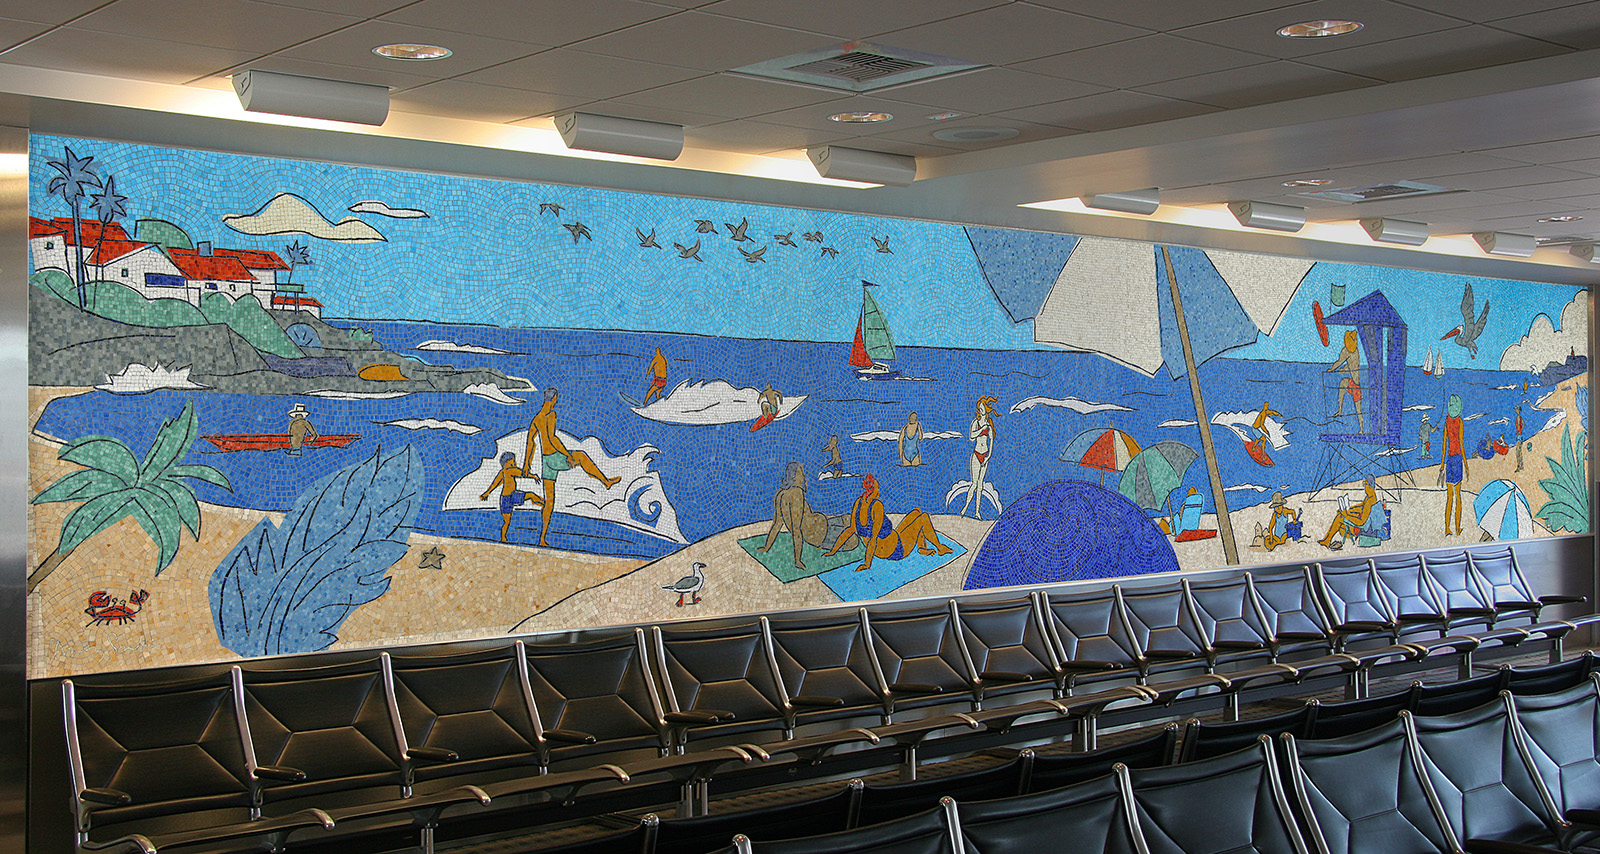 Project a day at the beach mosaic mural codaworx for Mural mosaic